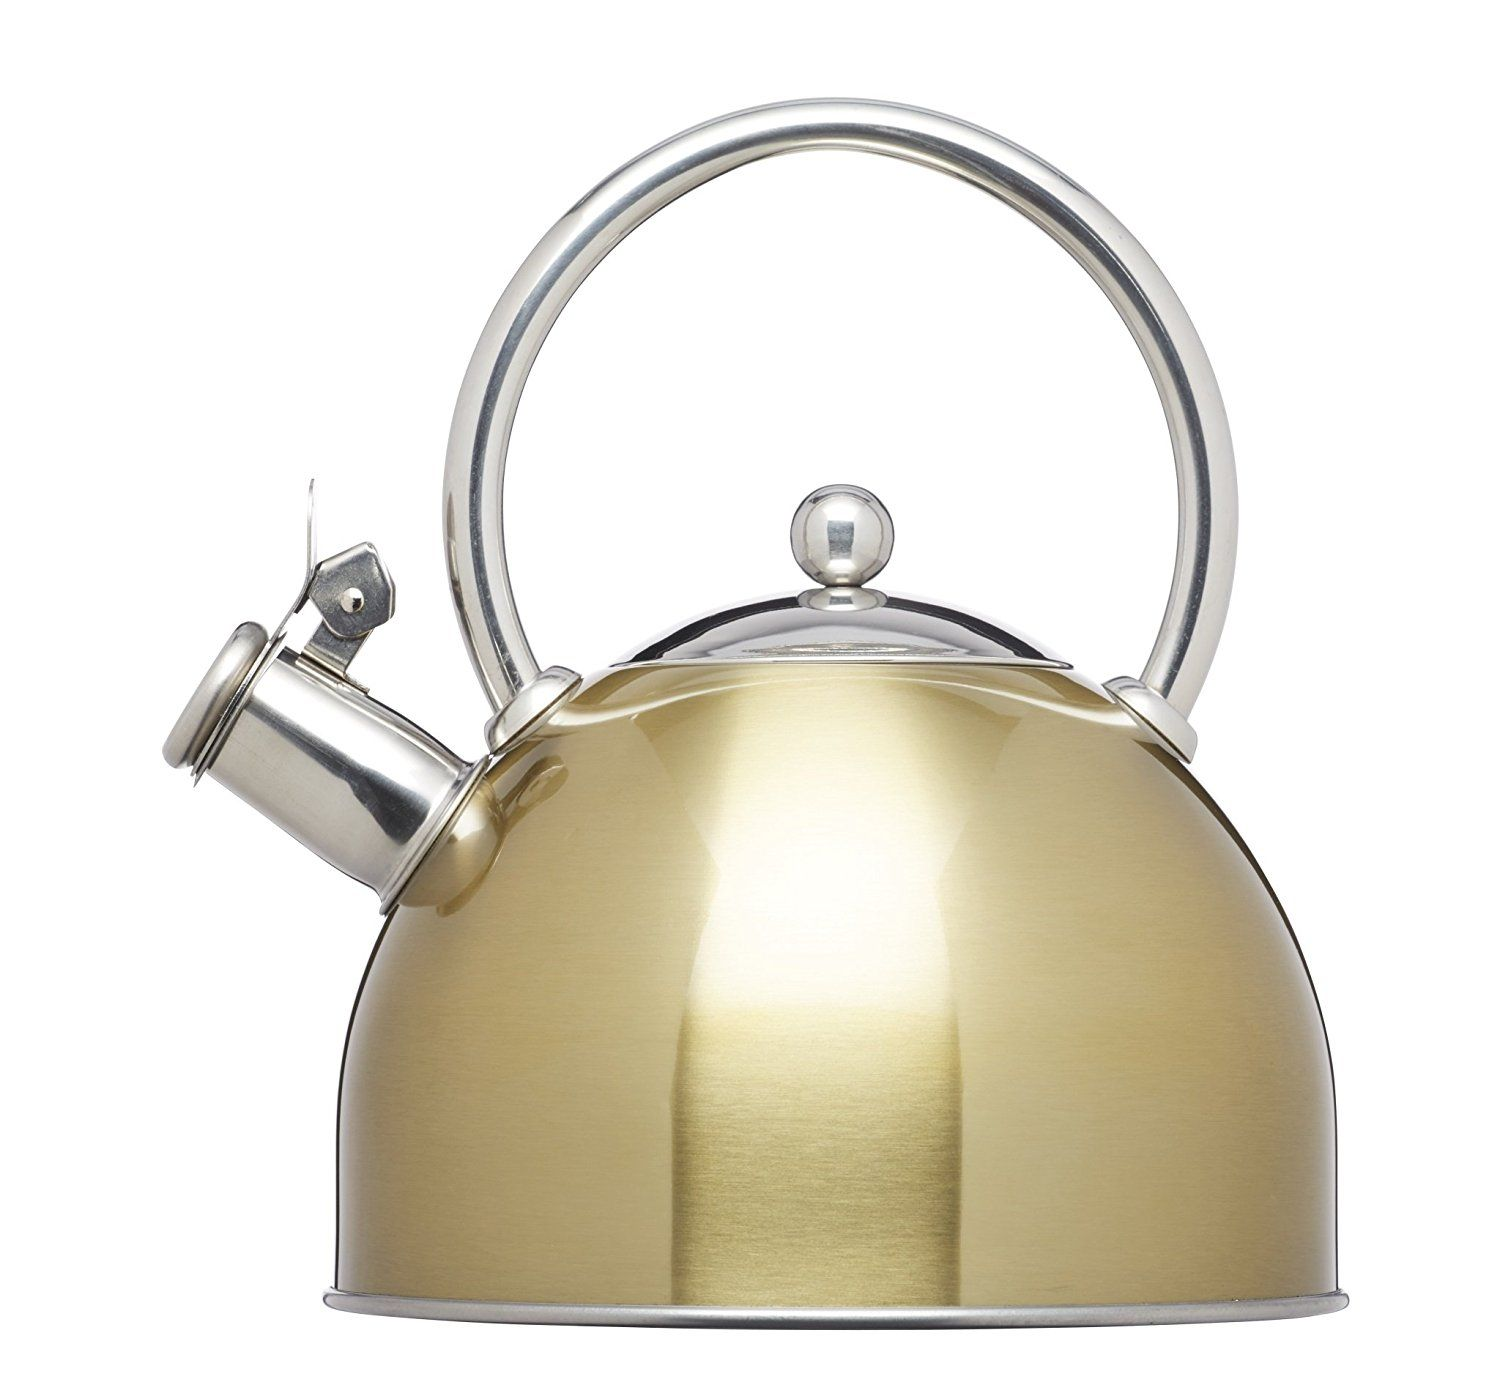 Kitchencraft Le Xpress Induction Safe 1 8l Stovetop Whistling Kettle In Br Finish Kitchen Dining